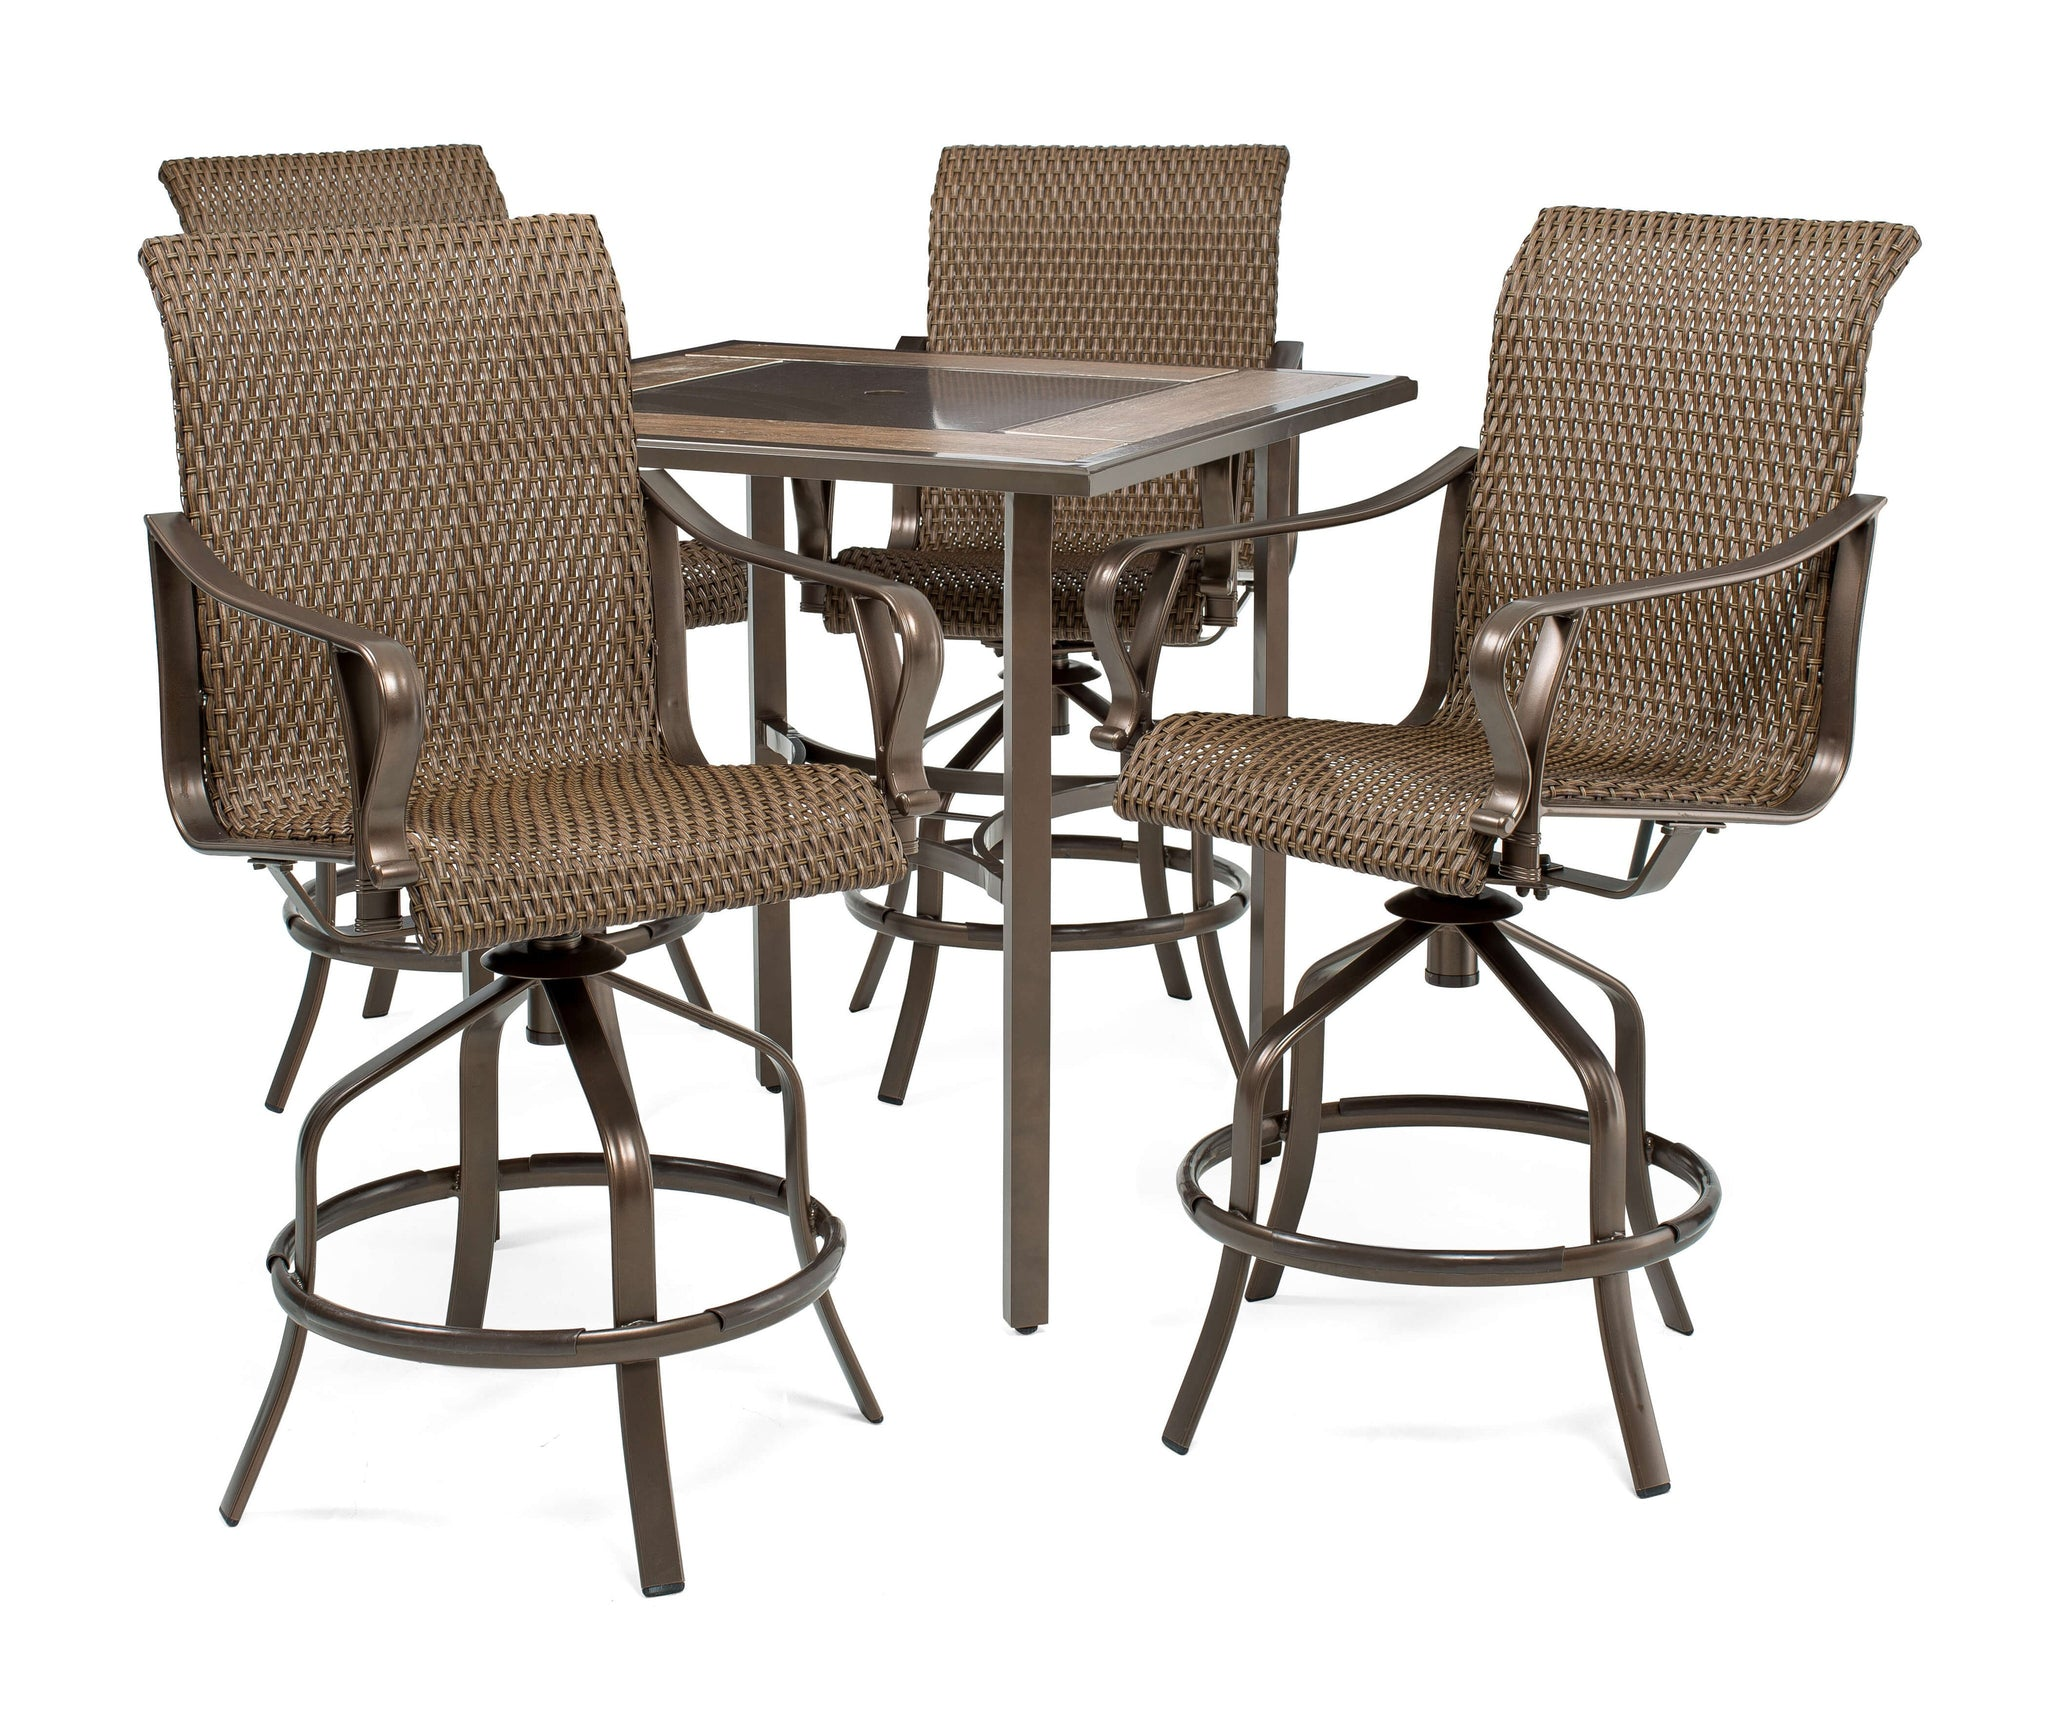 Rochester Woven 5pc Bar Height High Dining Patio Set – La Z Boy